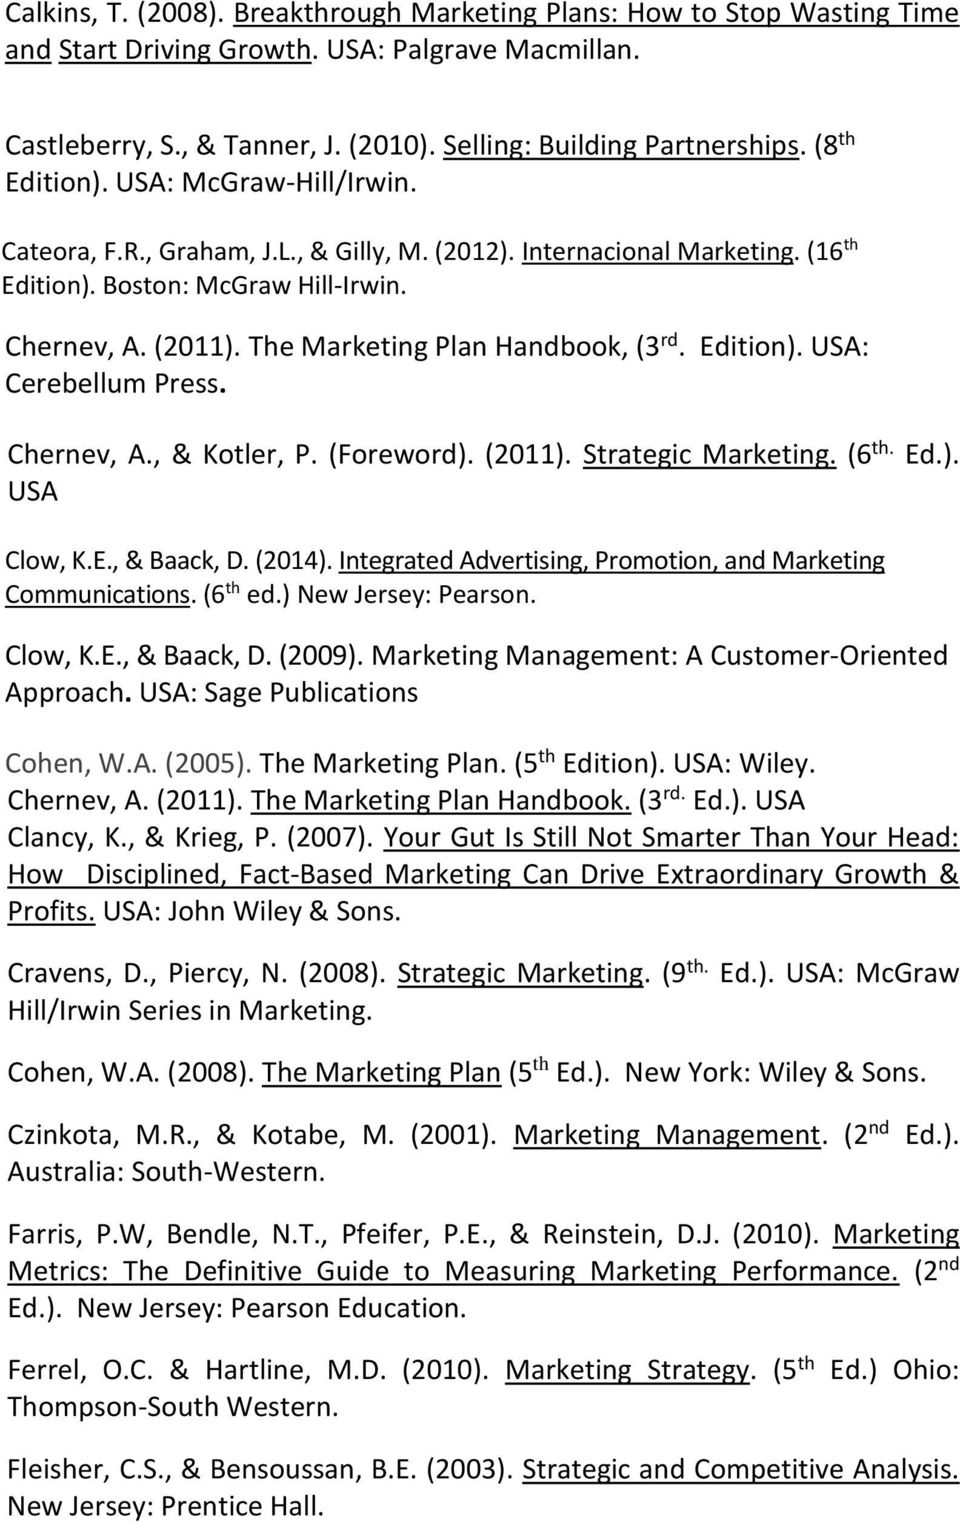 The Marketing Plan Handbook, (3 rd. Edition). USA: Cerebellum Press. Chernev, A., & Kotler, P. (Foreword). (2011). Strategic Marketing. (6 th. Ed.). USA Clow, K.E., & Baack, D. (2014).